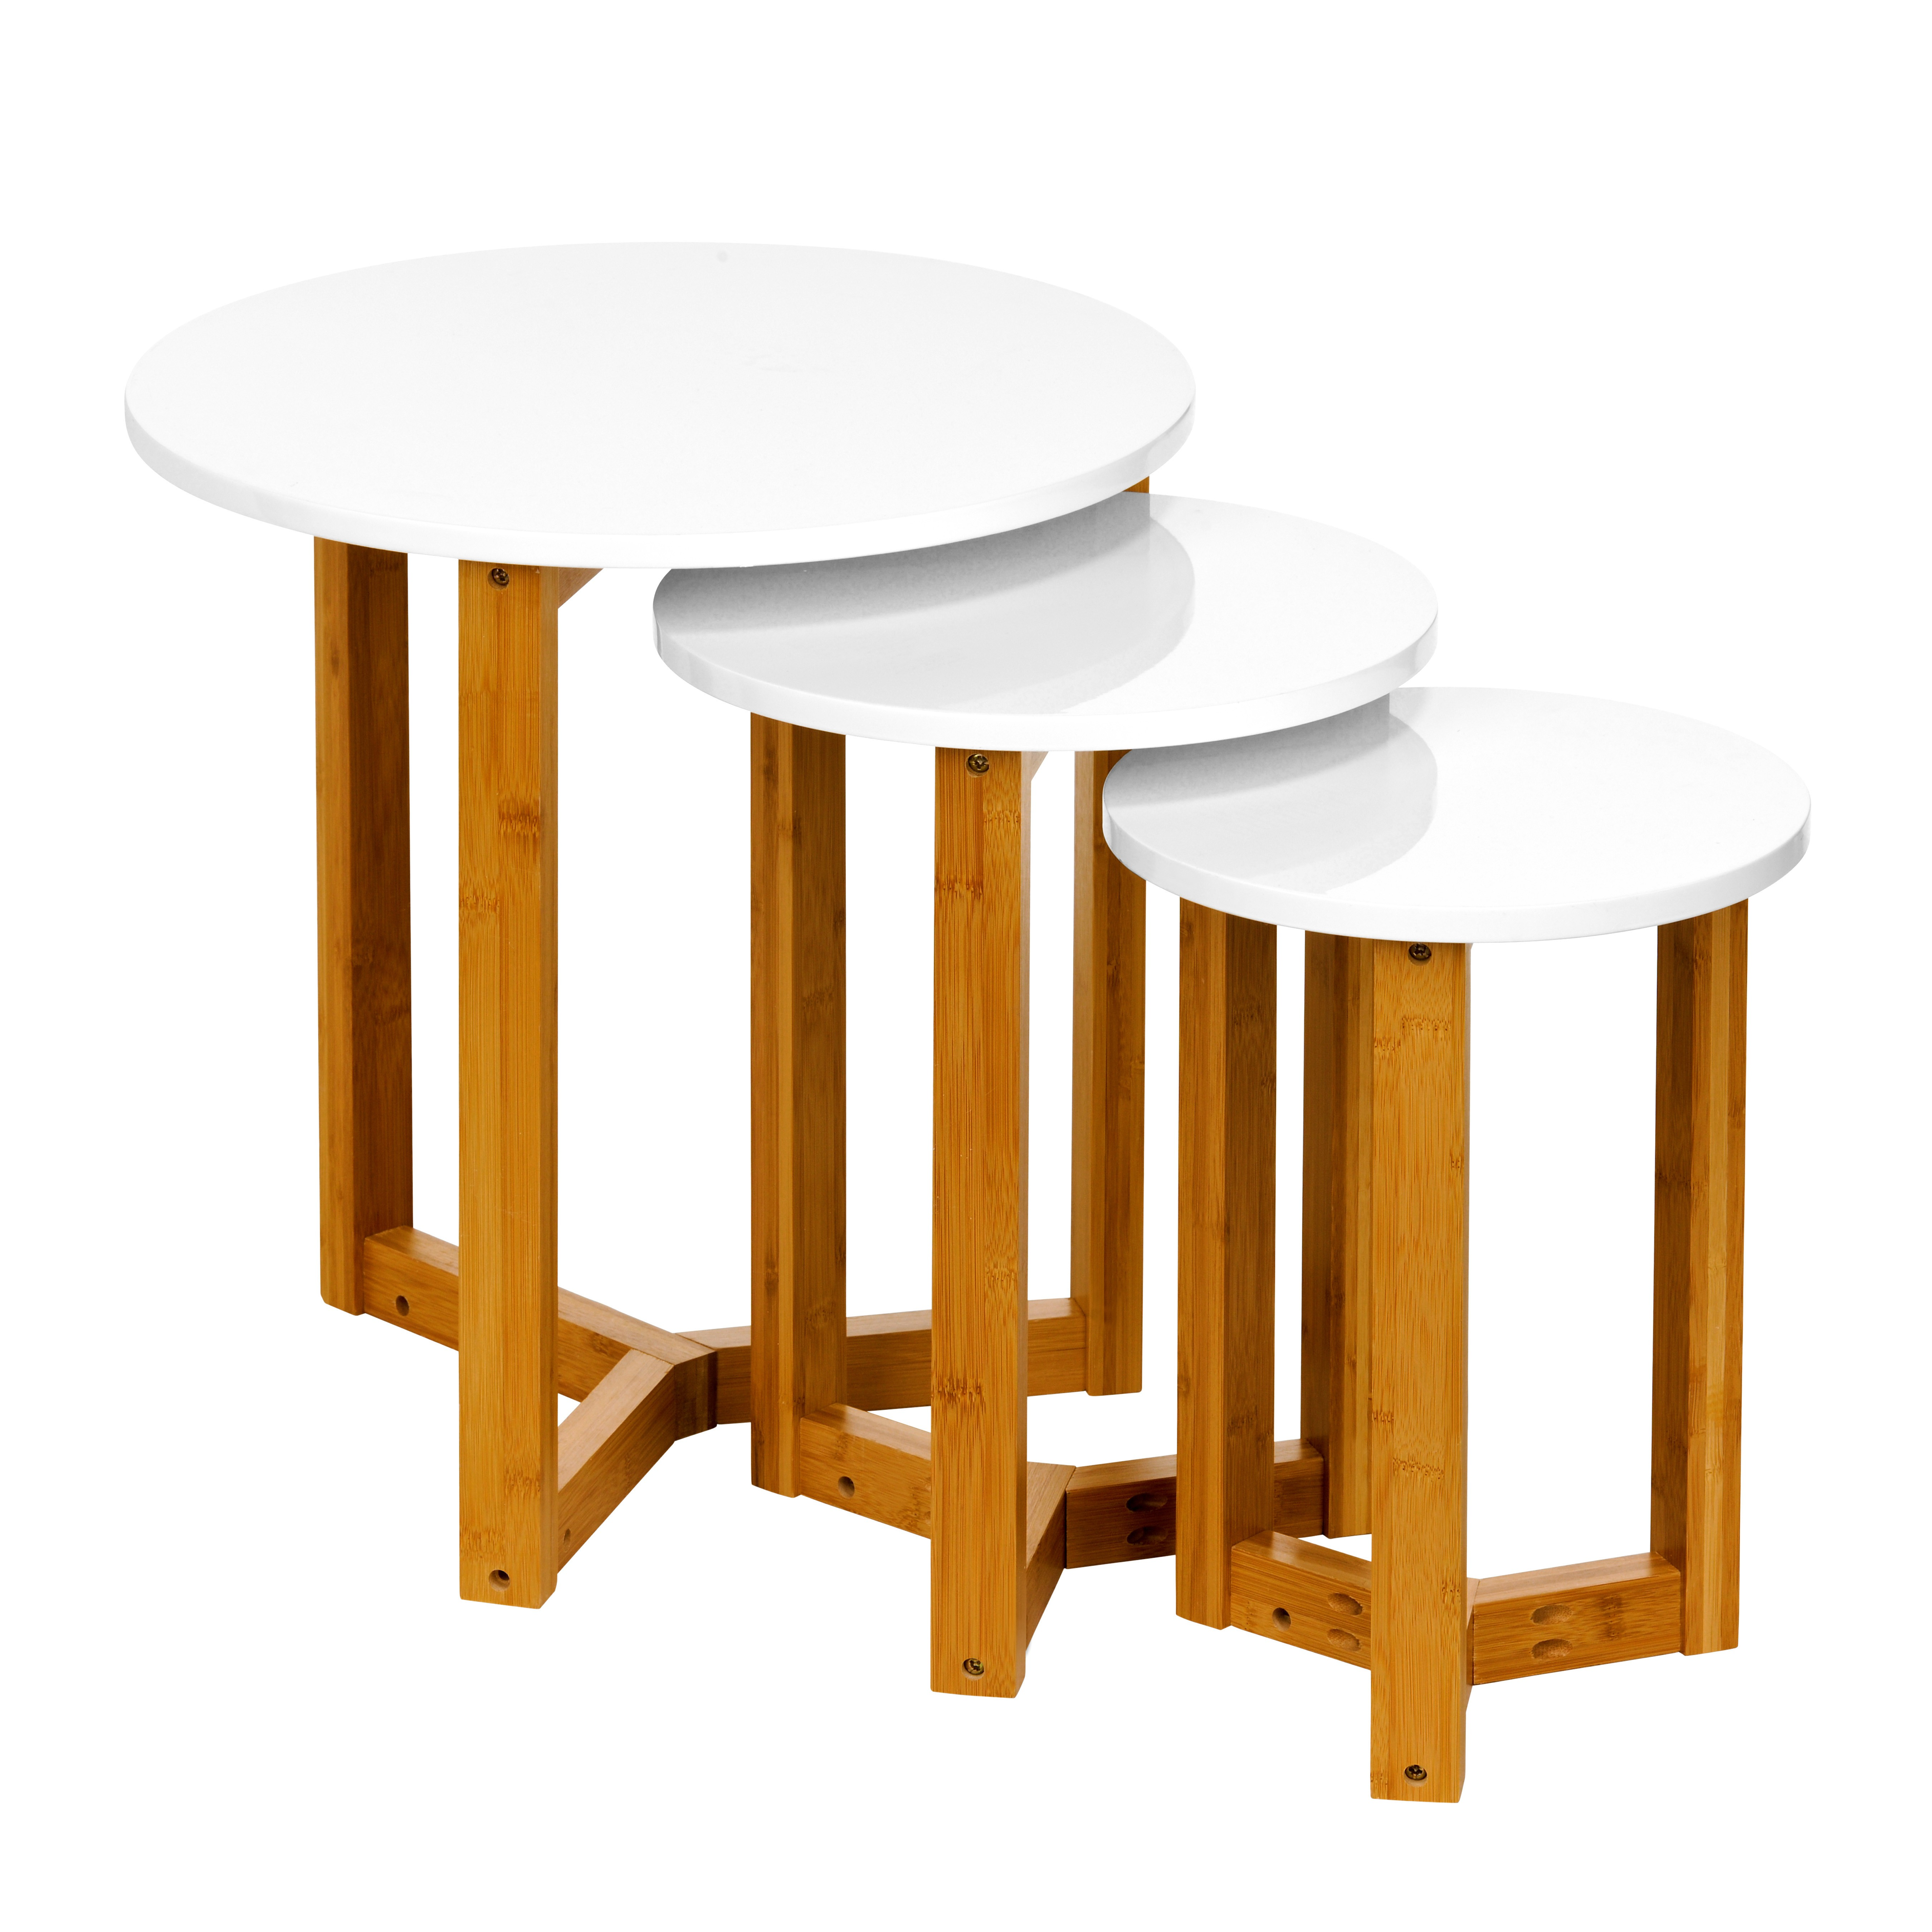 Nest Of 3 Tables MDF/White High Gloss Finish Bamboo Legs